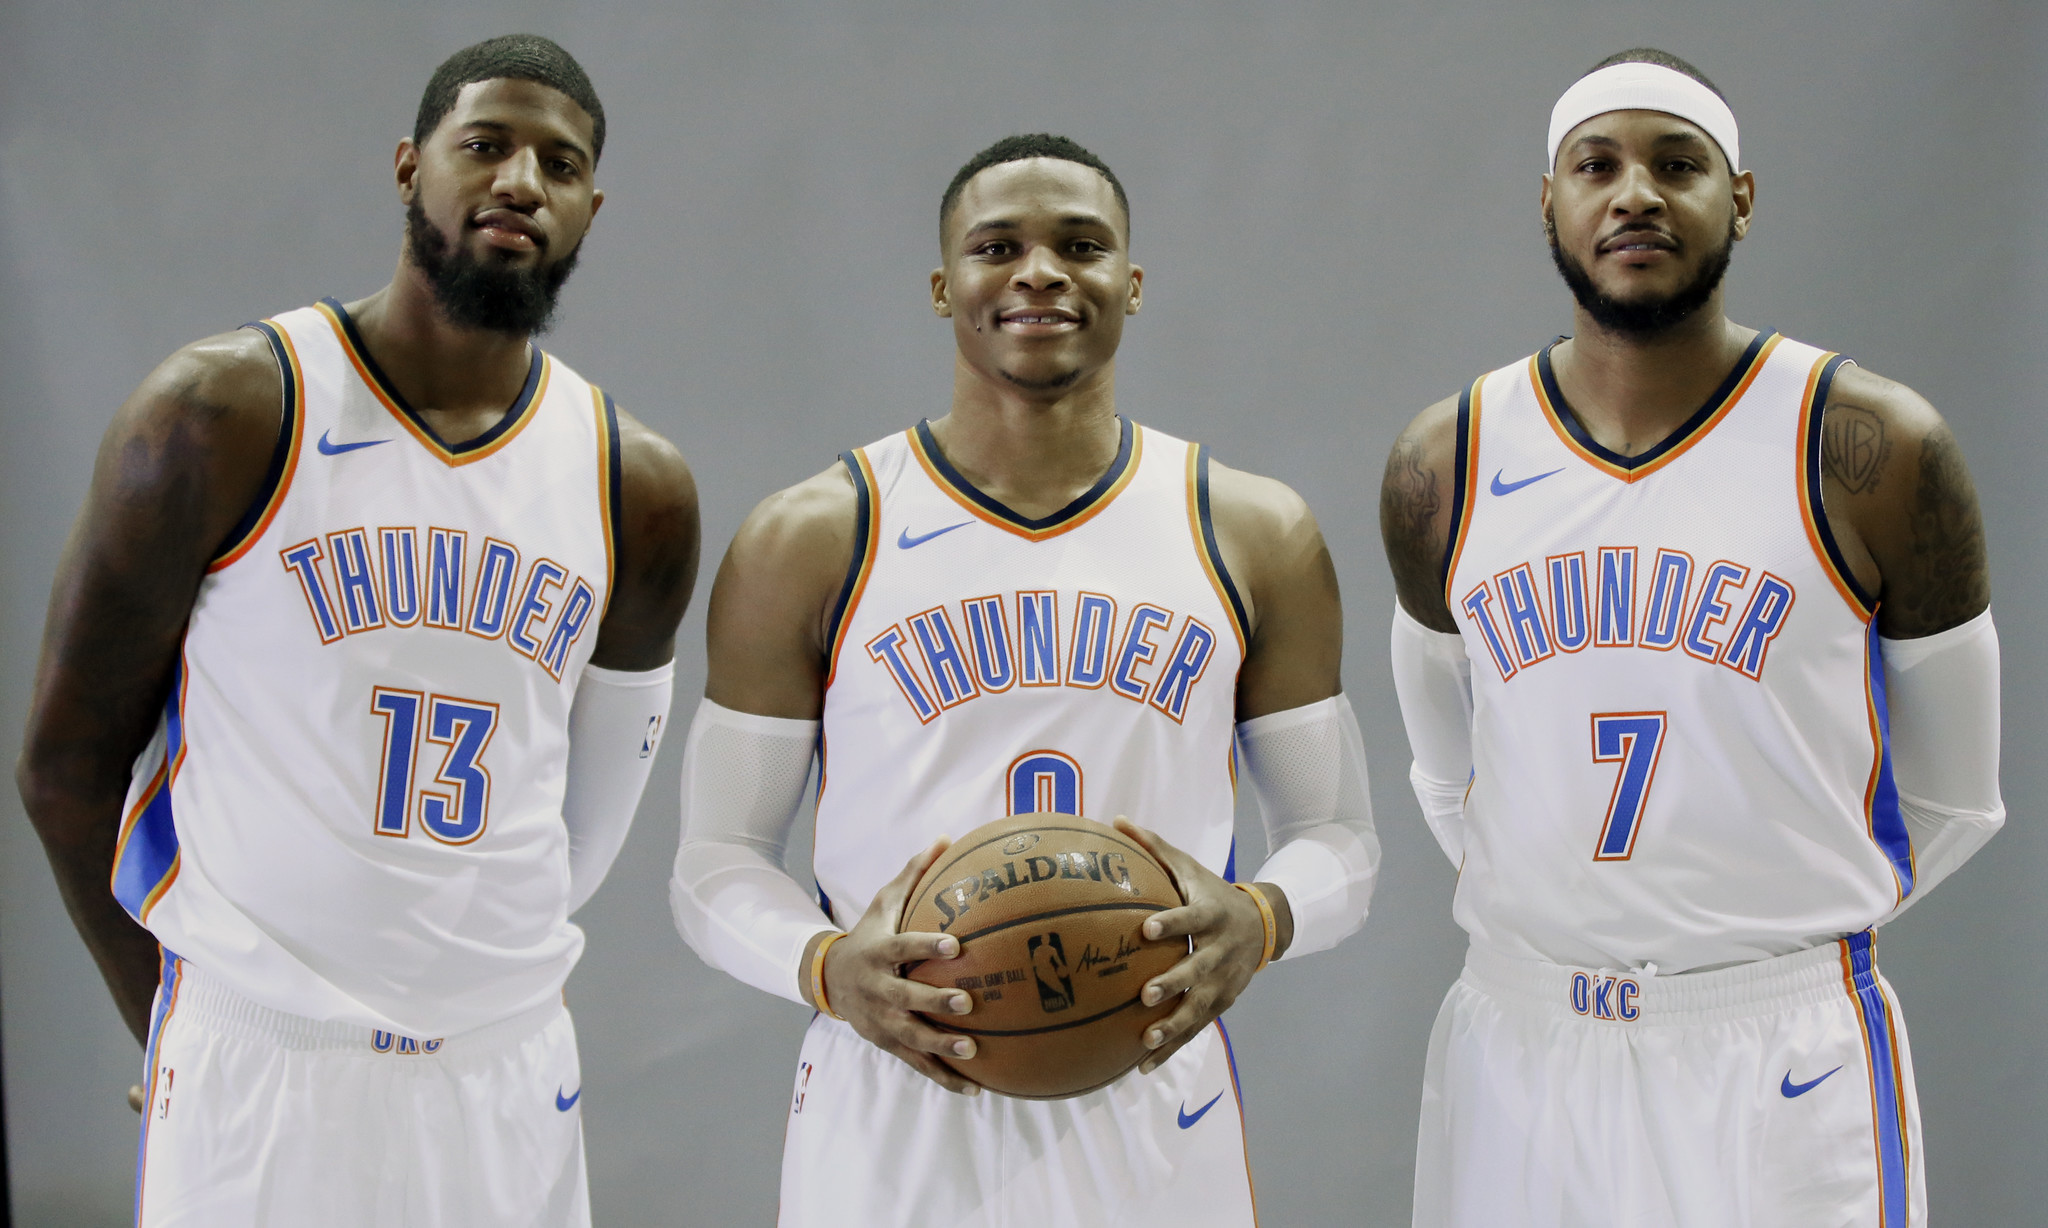 russell westbrook's thunder was a one-man band. now he's